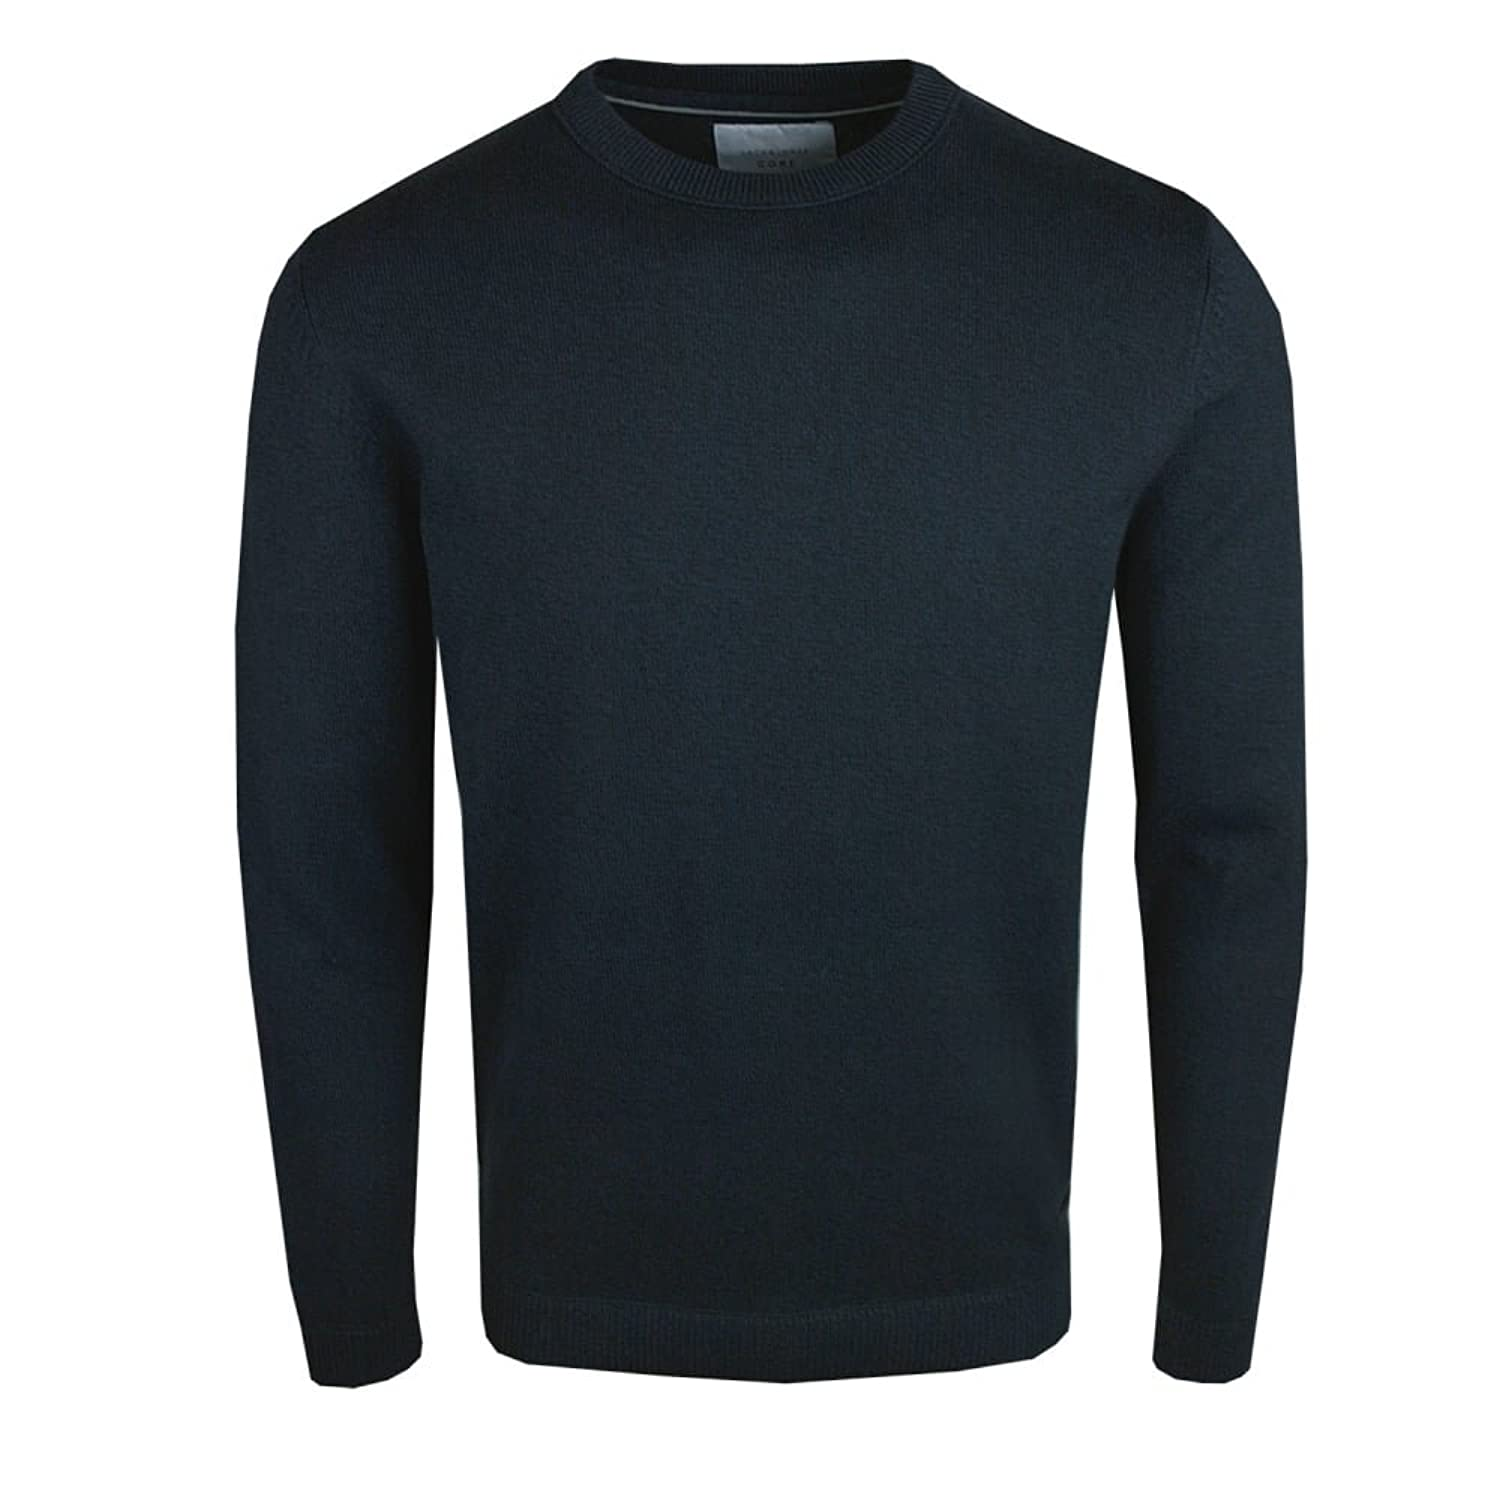 Jack & Jones Men's Jcotwisting Knit Crew Neck Jumper